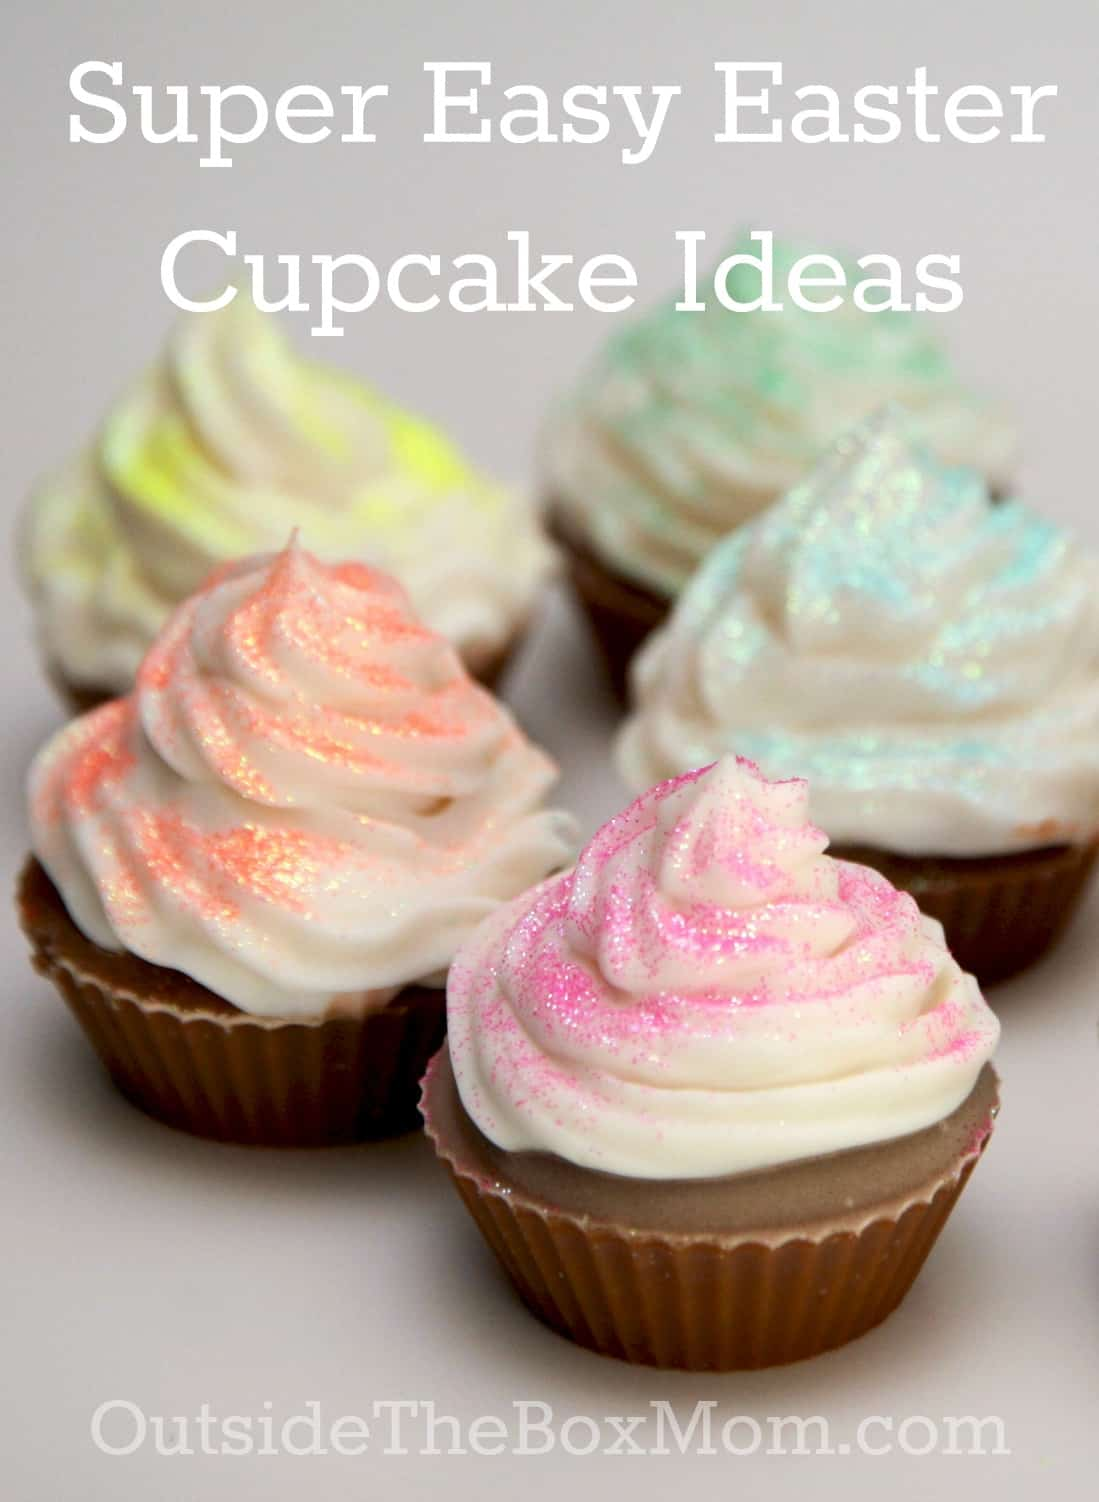 Super Easy Cupcake Ideas | Outsidetheboxmom.com